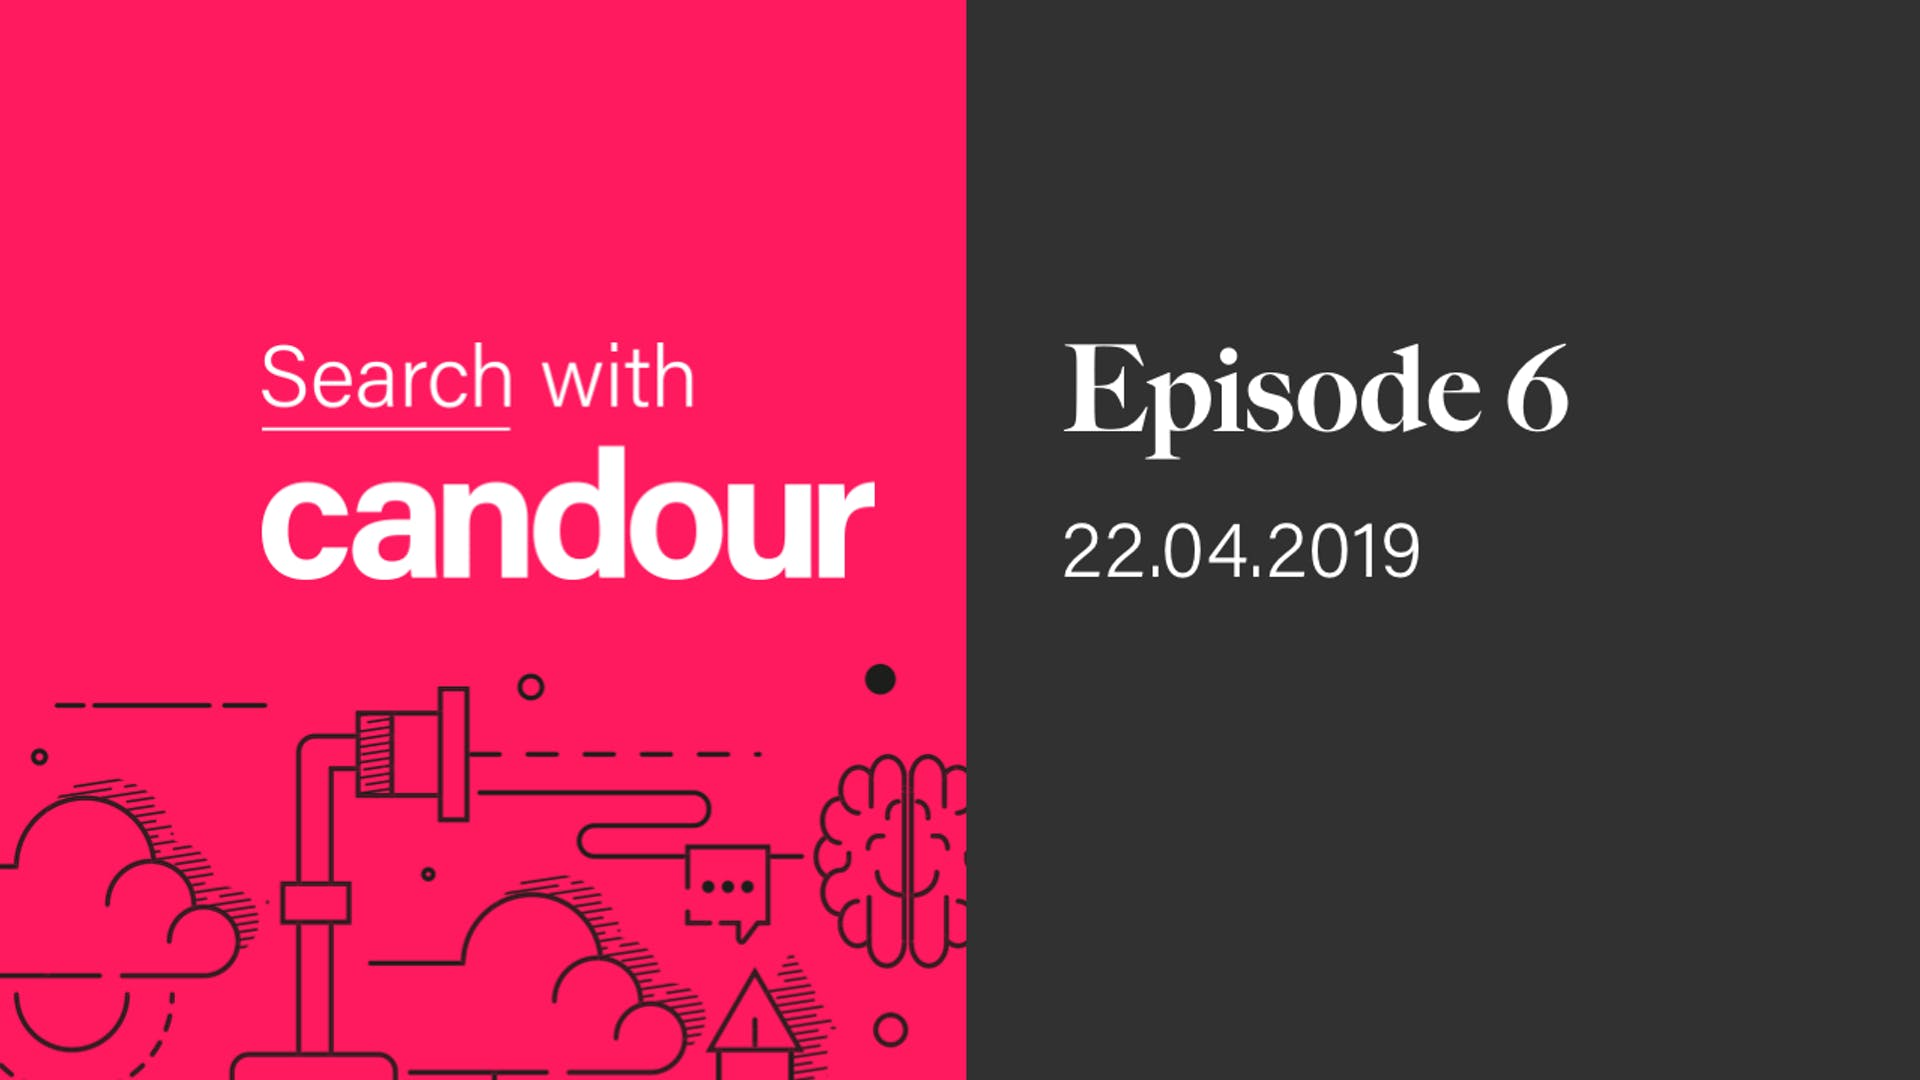 Search with Candour podcast - Episode 6